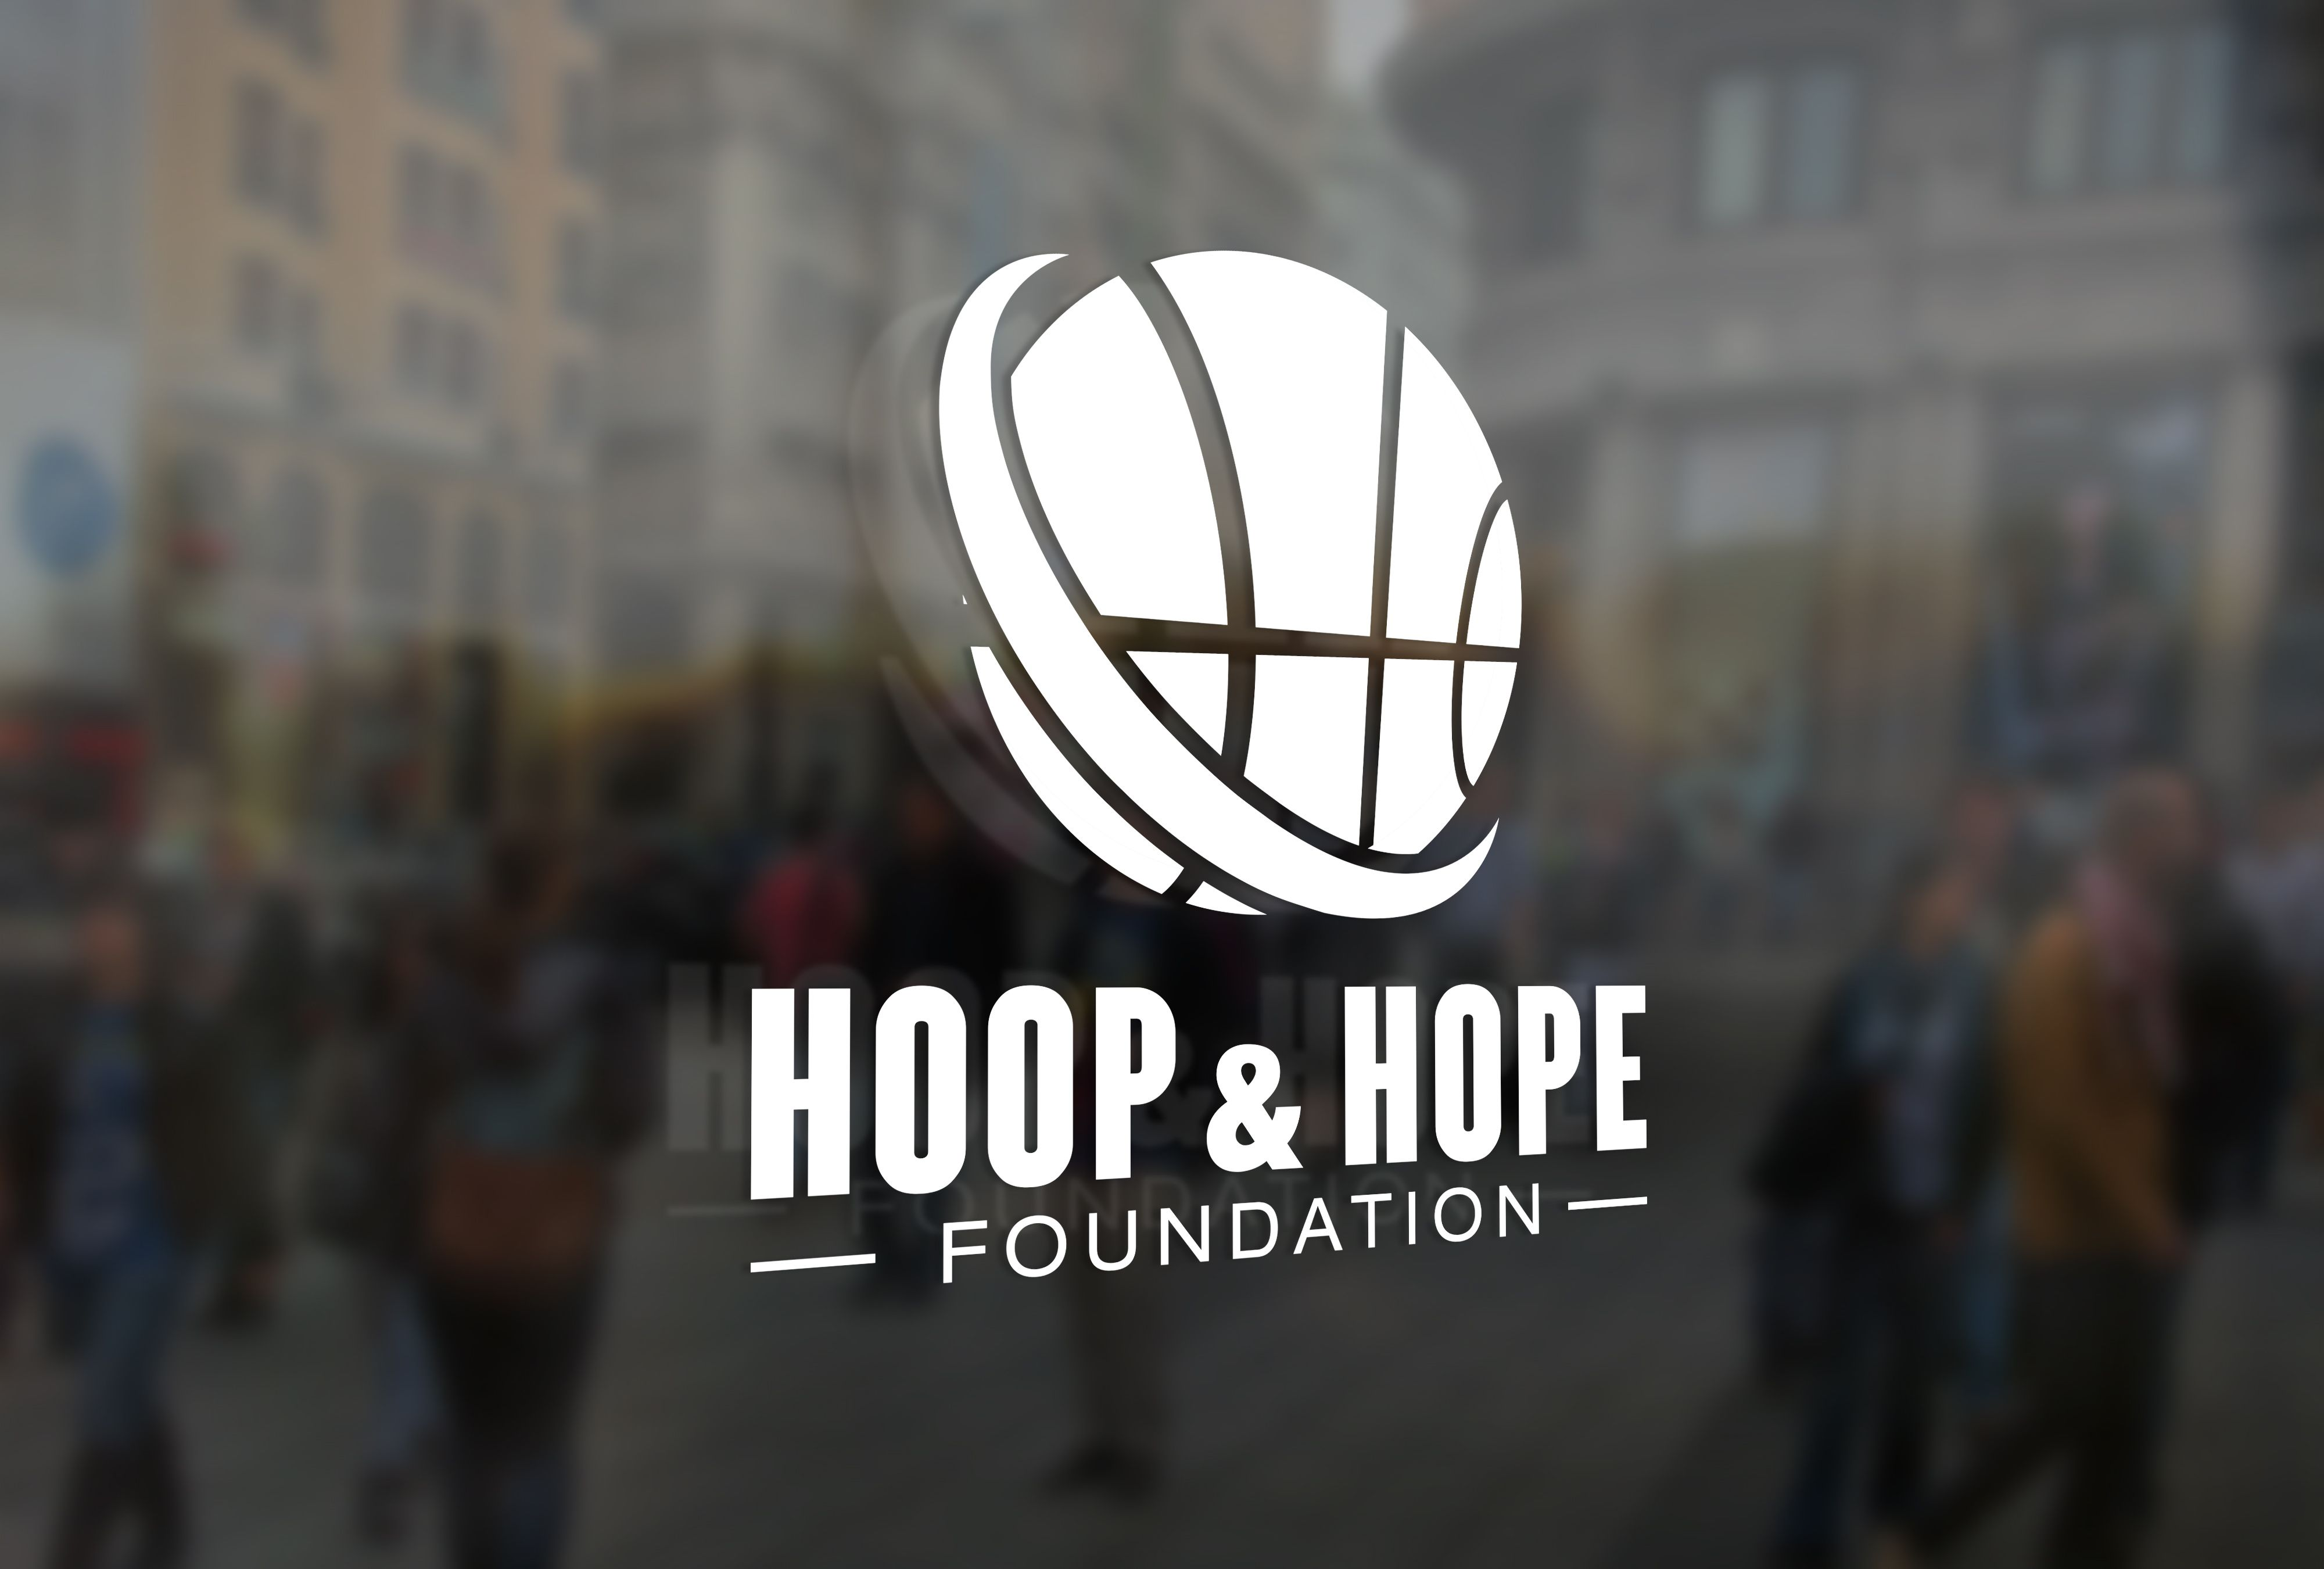 Client name : Hoop & Hope Foundation (Hoop & Hope Foundation is dedicated in building basketball courts in rural towns, villages, and schools in China.) Project type : LOGO Design 客戶名稱:Hoop & Hope Foundation (Hoop & Hope Foundation會致力於中國的學校、農村城鎮及村莊建設籃球場,推動關愛精神) 項目類別:LOGO設計  Contact information:   Facebook : https://www.facebook.com/MackStudioHK/photos_stream?tab=photos_albums Behance : https://www.behance.net/Mack_Studio  Website: http://mack-studio.com E-mail: mackchan.studio@gmail.com